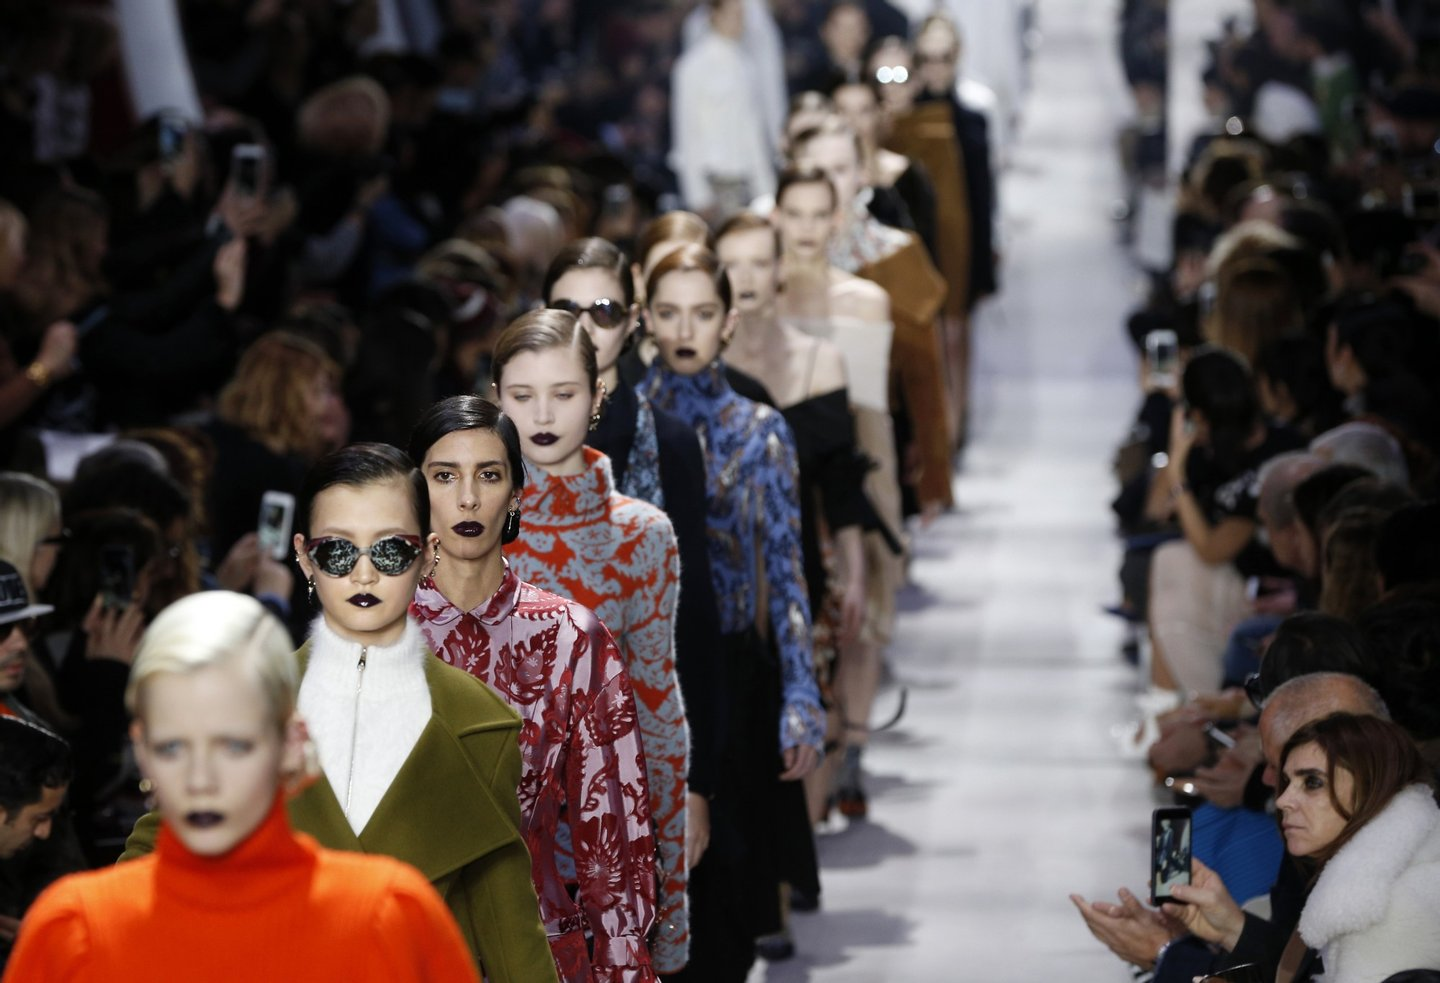 Models present creations for Christian Dior during the 2016-2017 fall/winter ready-to-wear collection fashion show on March 4, 2016 in Paris. AFP PHOTO / FRANCOIS GUILLOT / AFP / François GUILLOT (Photo credit should read FRANCOIS GUILLOT/AFP/Getty Images)